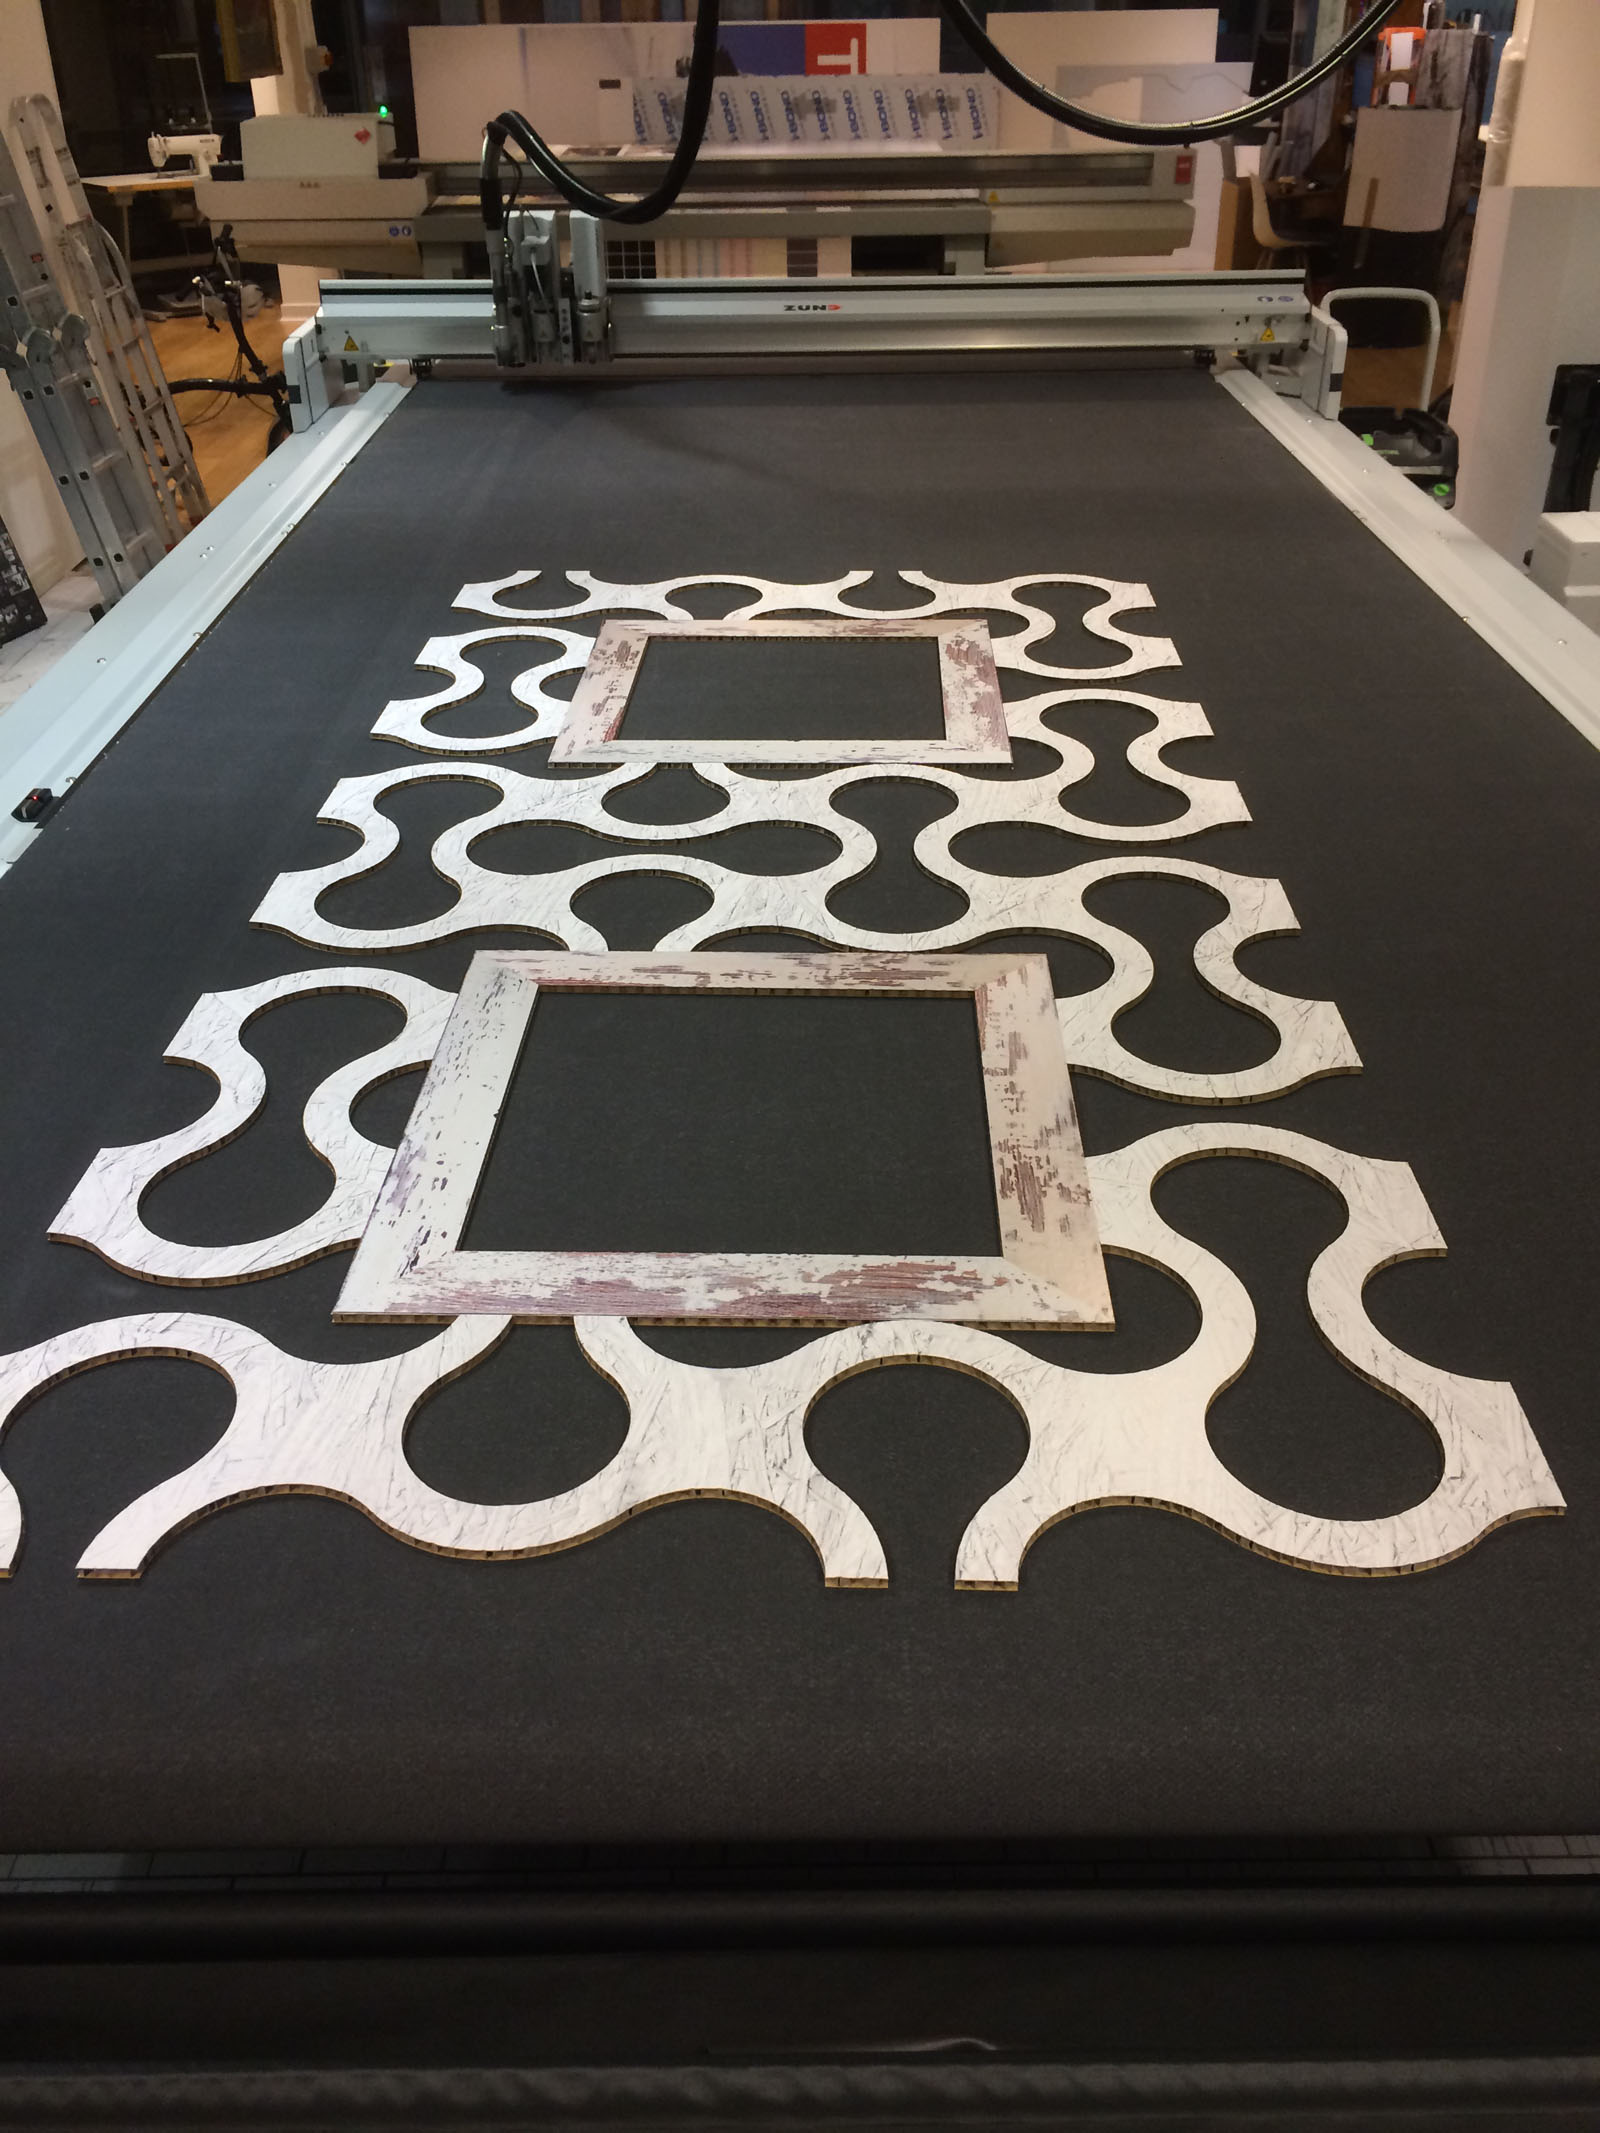 CNC Routing and Cutting | Onward Display